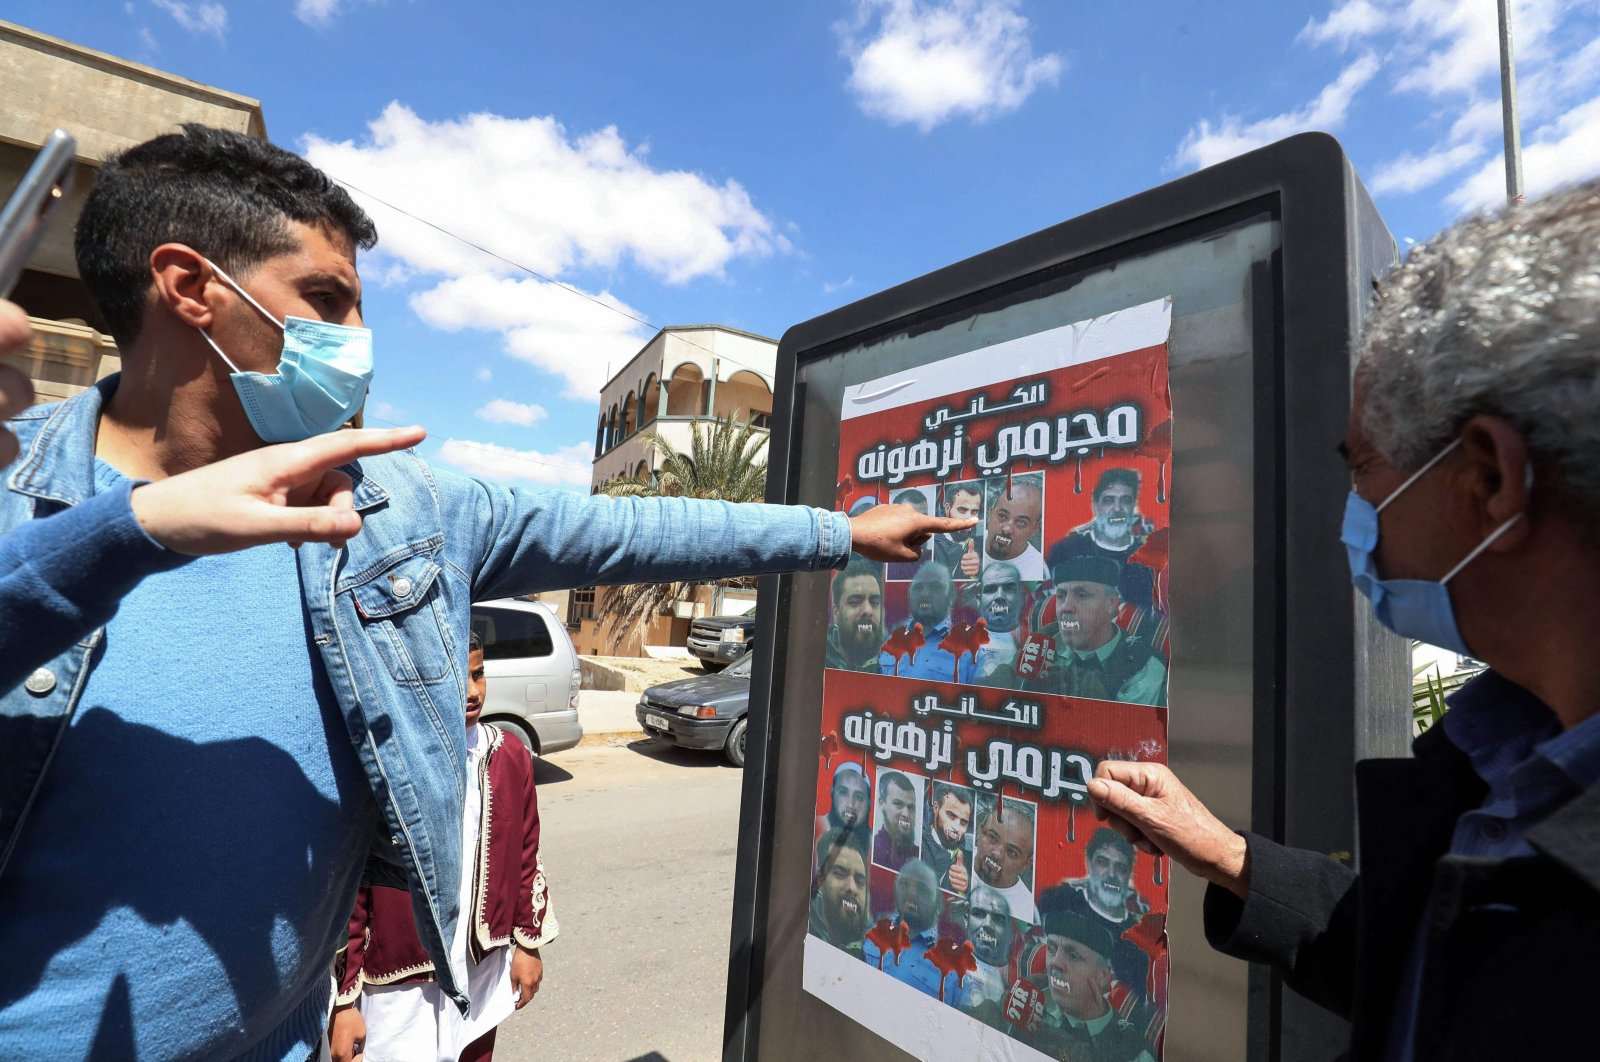 """Libyans look at a poster depicting members of a family who commanded a militia that traumatized Tarhuna town with the Arabic phrase """"al-Kani, Tarhuna's criminals"""", during a funeral procession for 12 bodies that were identified from mass graves found in Tarhuna town, March 26, 2021. (AFP)"""